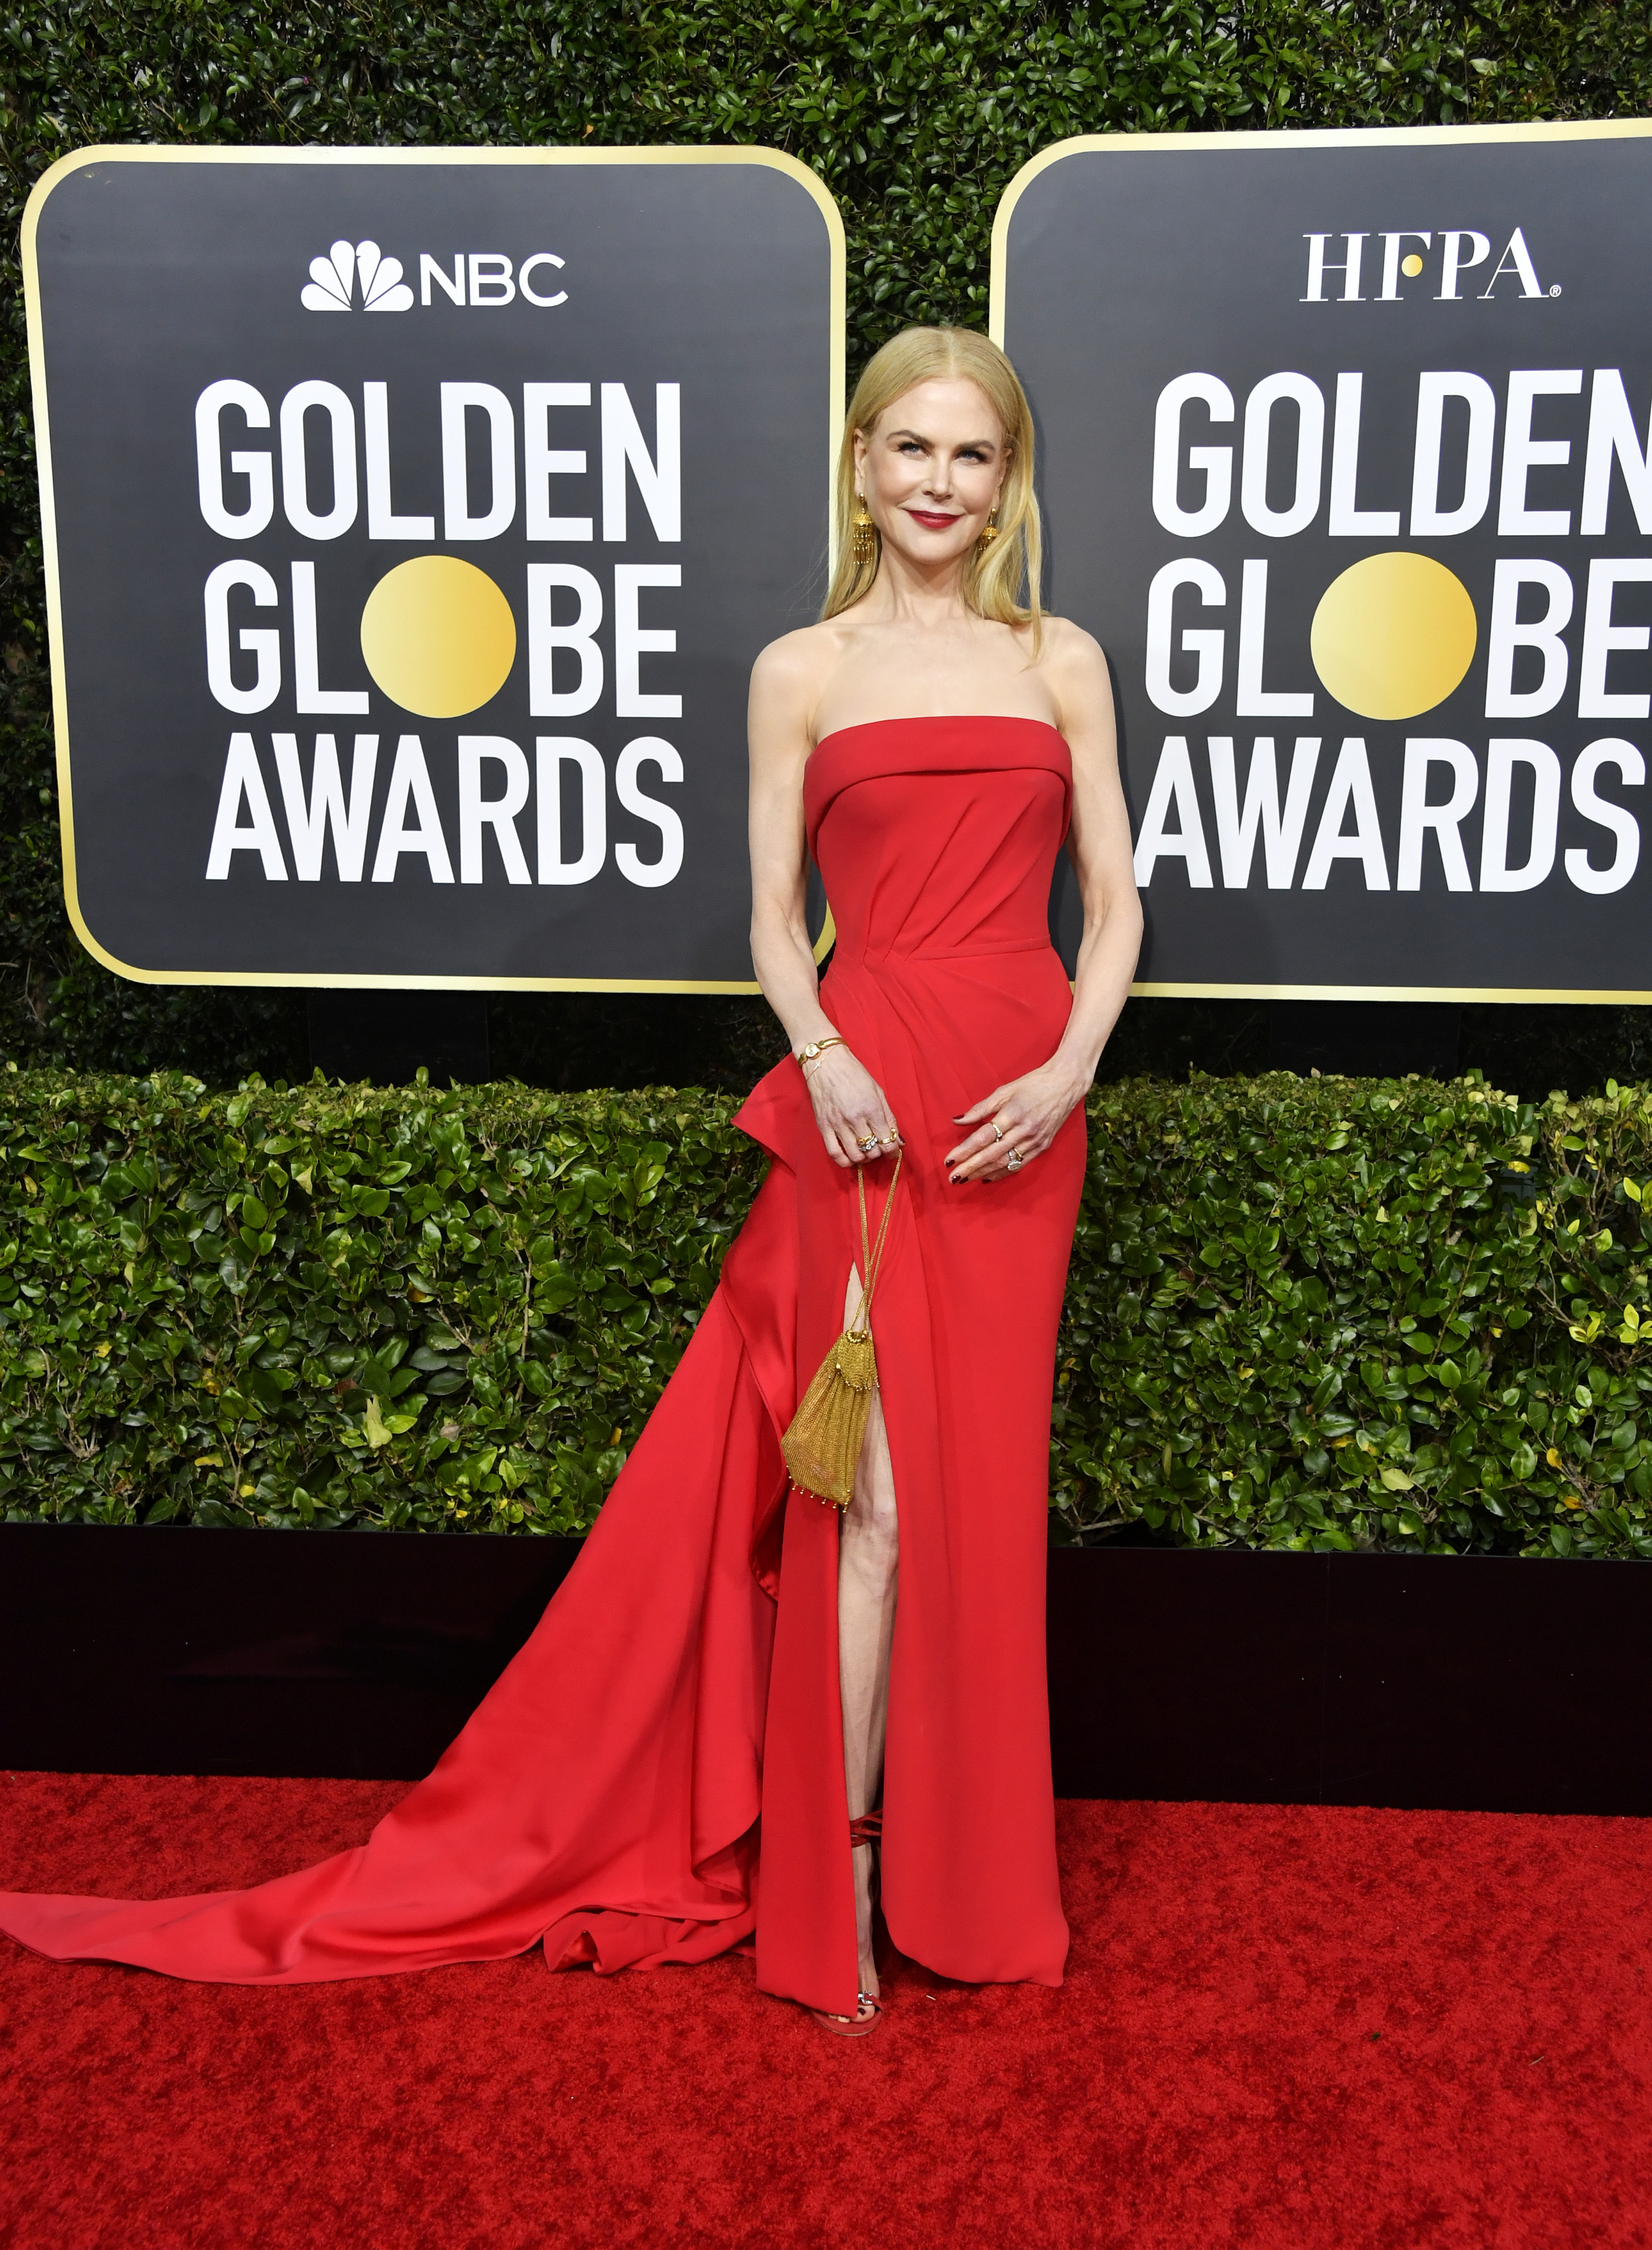 BEVERLY HILLS, CALIFORNIA - JANUARY 05: Nicole Kidman attends the 77th Annual Golden Globe Awards at The Beverly Hilton Hotel on January 05, 2020 in Beverly Hills, California. (Photo by Frazer Harrison/Getty Images)